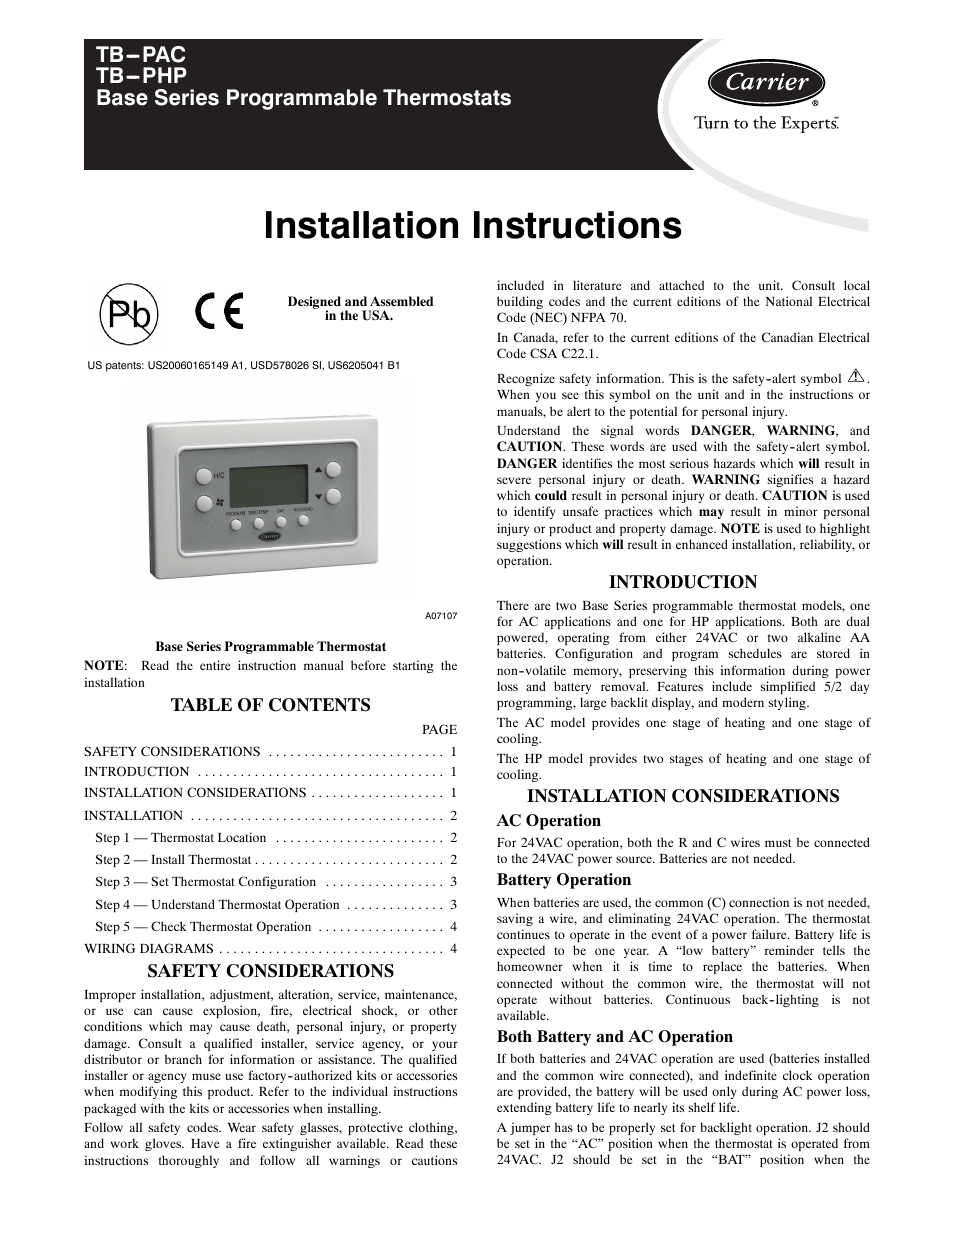 carrier base series programmable thermostats tb pac page1?resize\=665%2C861 camstat fan control wiring diagram lennox wiring diagram, broan camstat wiring diagram at bayanpartner.co